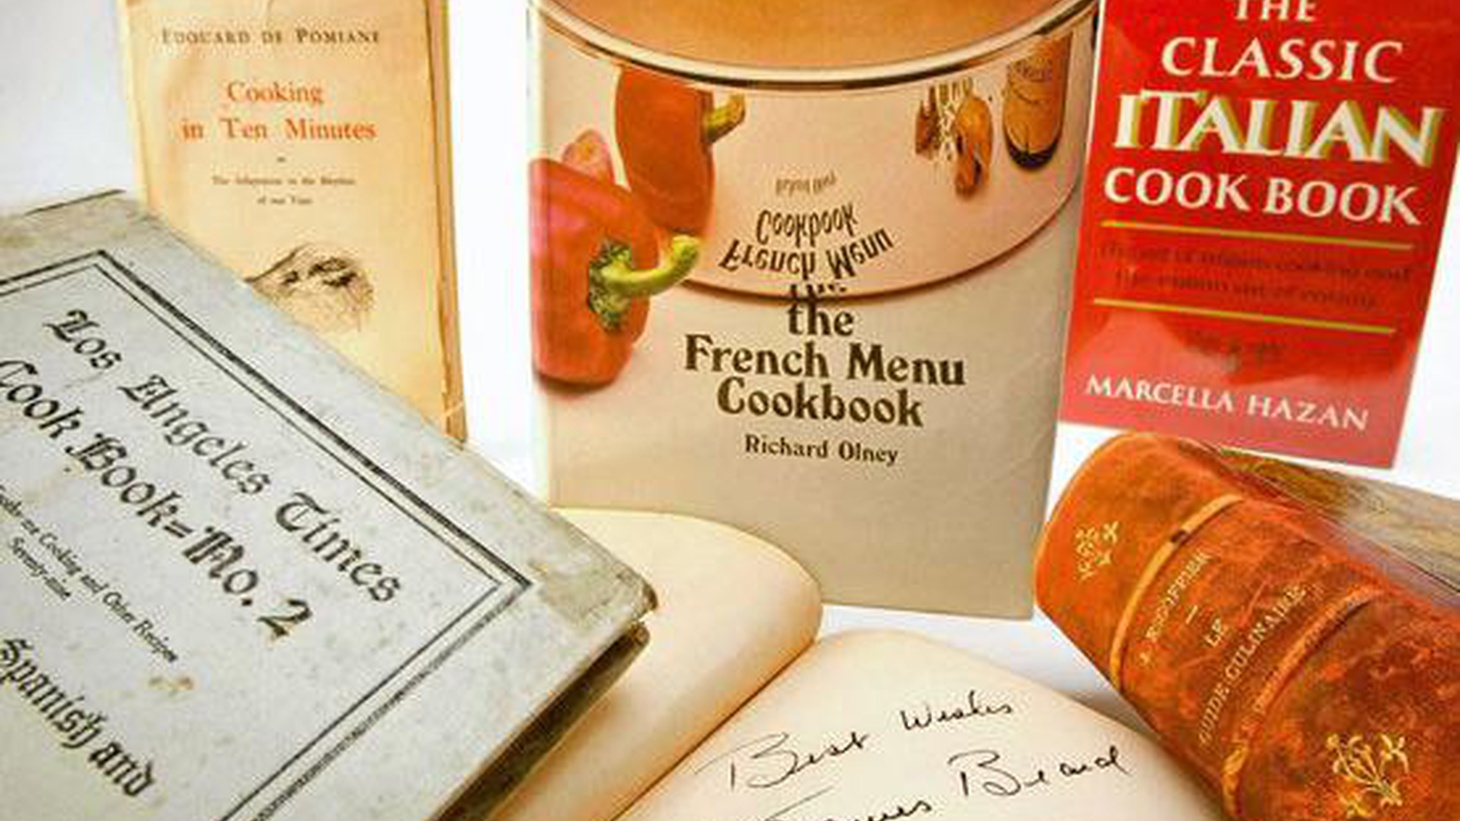 Does it matter who authors a cookbook if the recipes work? Discover the secret life of a cookbook ghostwriter. Plus, soda versus pop, a linguist explains.